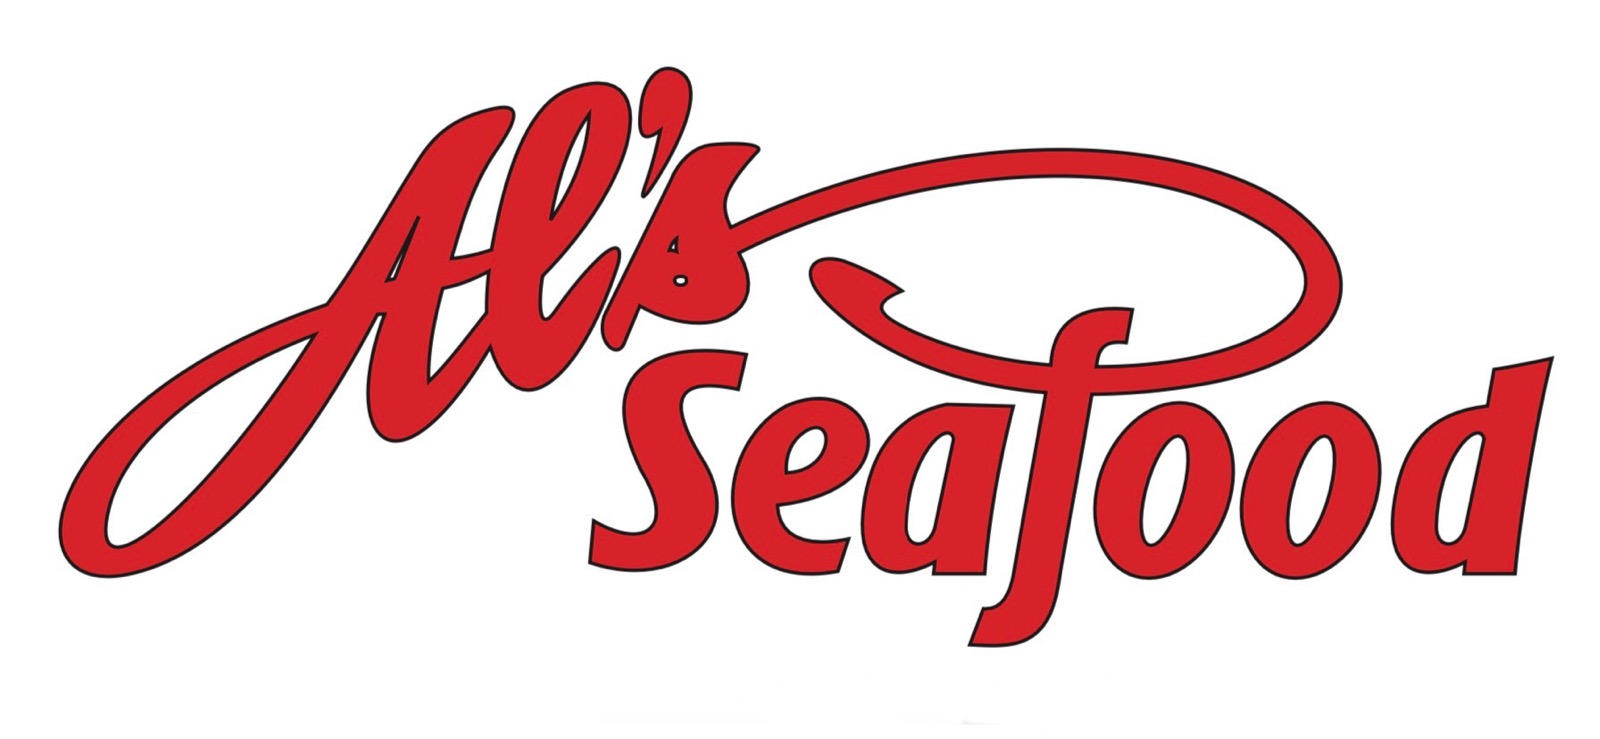 Al's Seafood | Best Seafood in Essex, Maryland